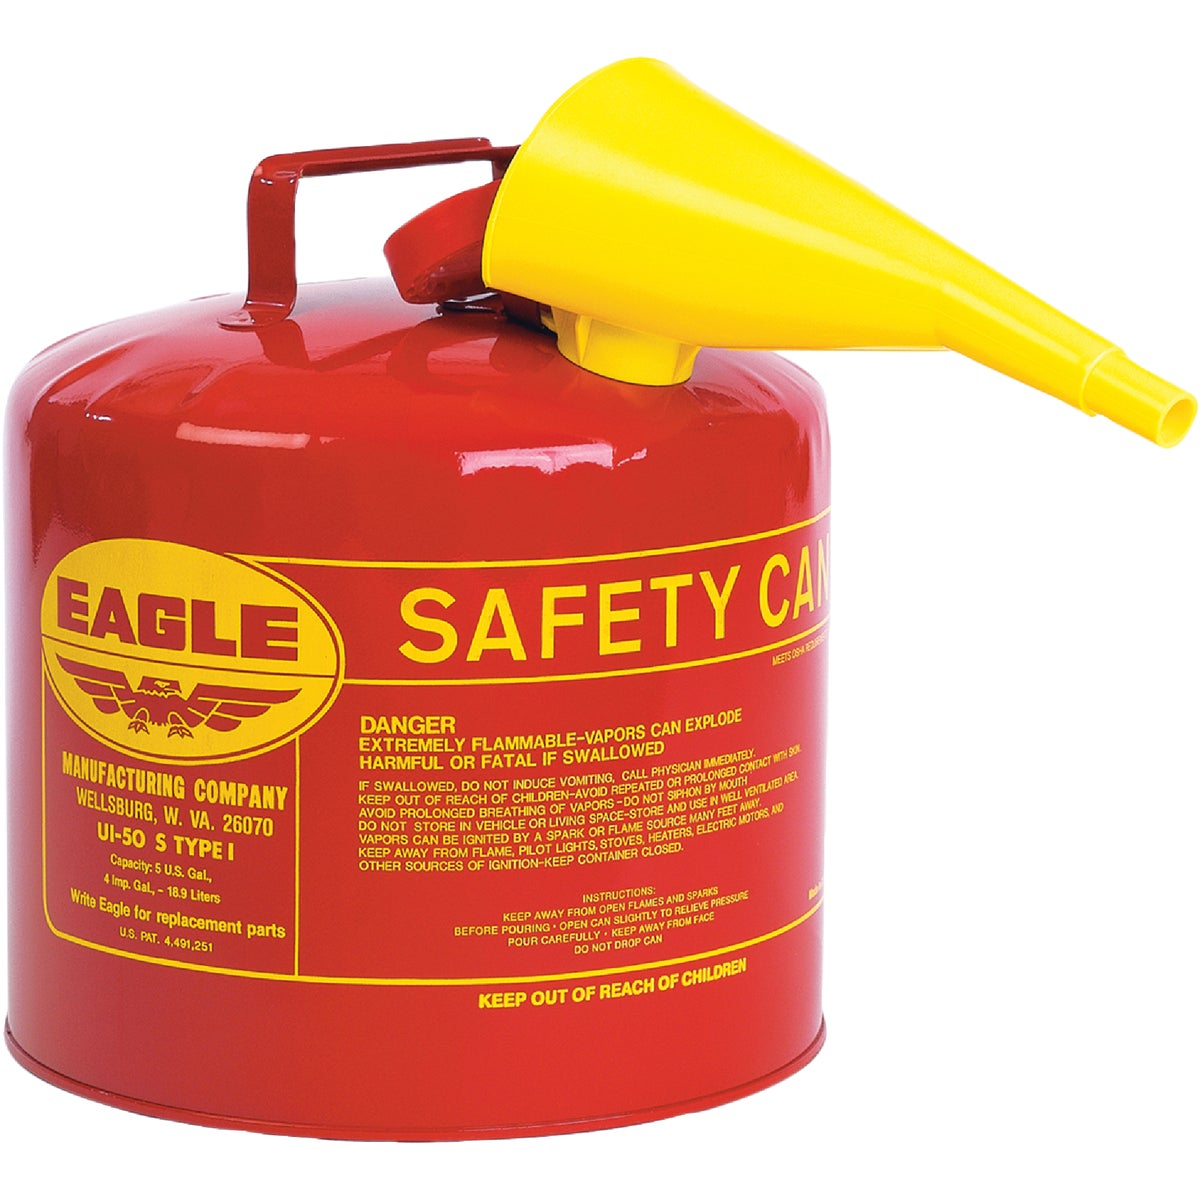 RED 5GAL GAS SAFETY CAN